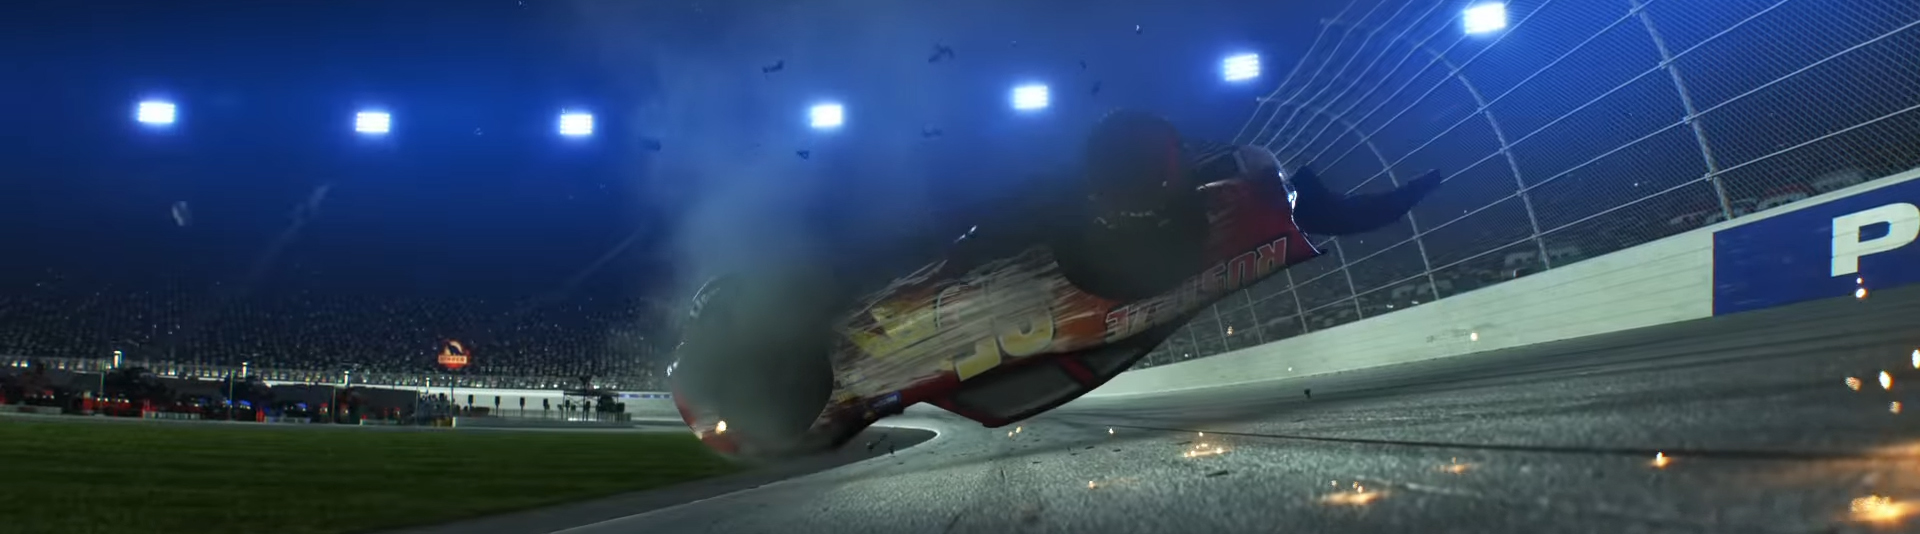 Cars 3. Image Credit: Pixar/Disney.